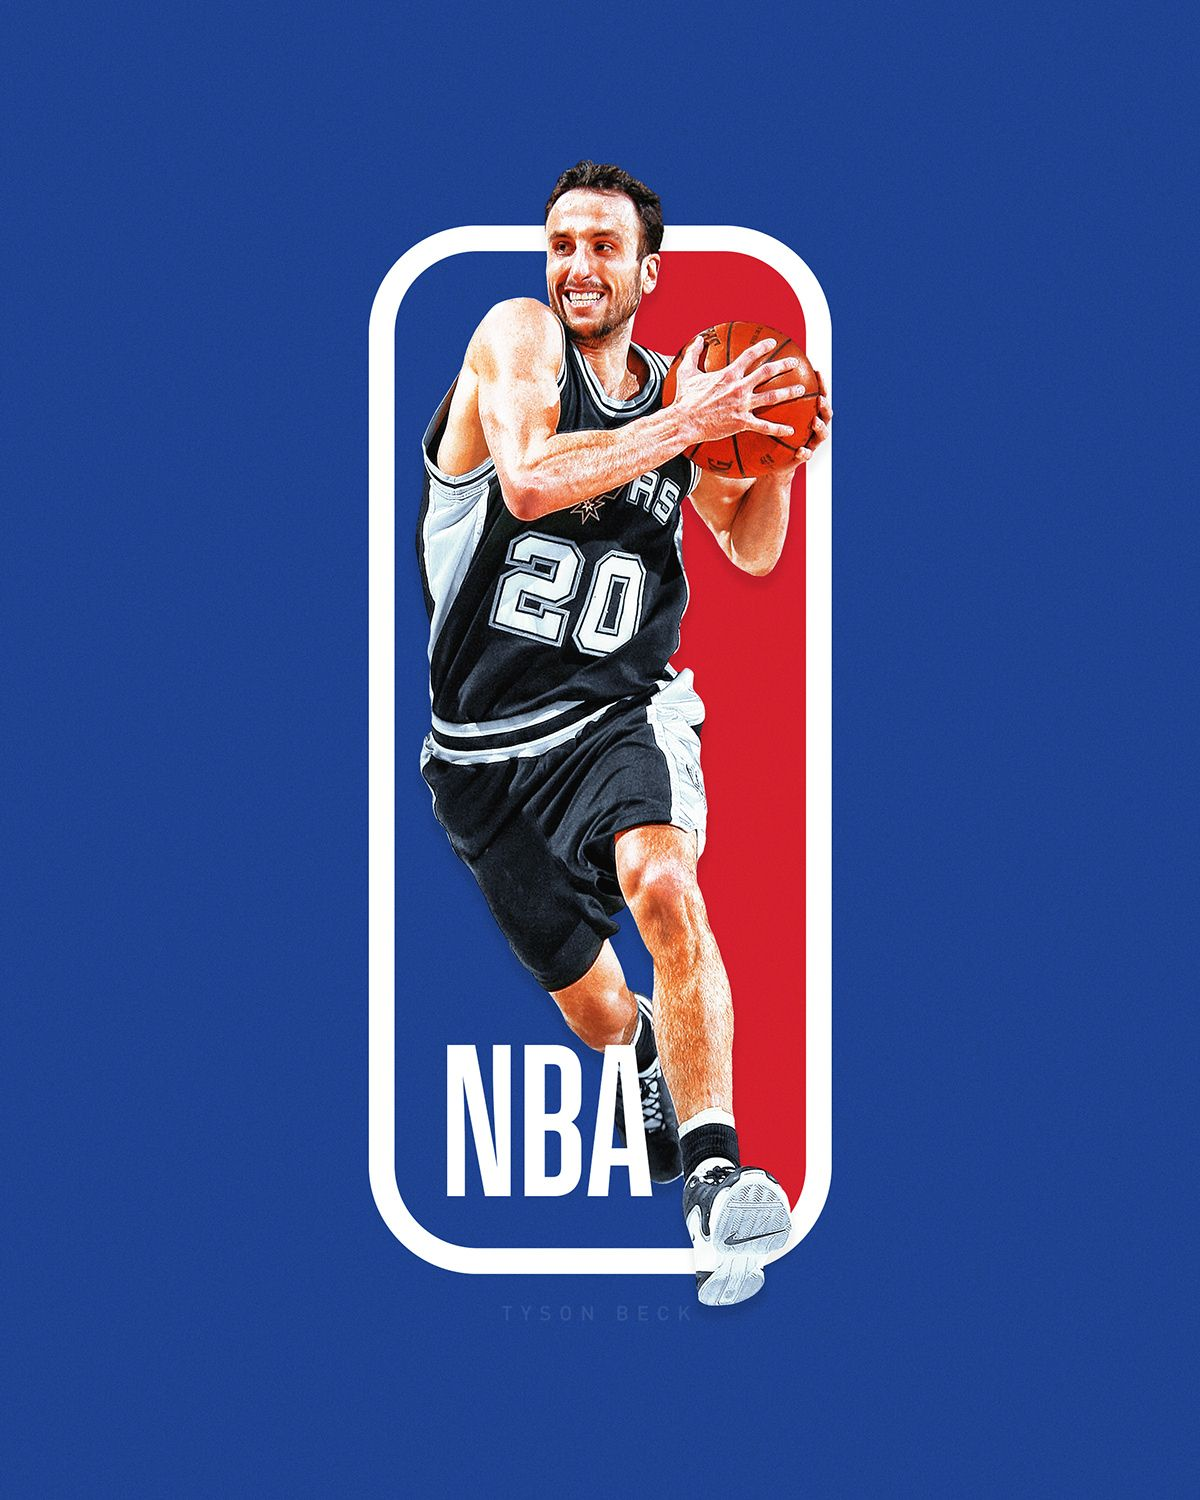 Pin by theNikeCEO1 on Inspiration Nba logo, Nba, Nba